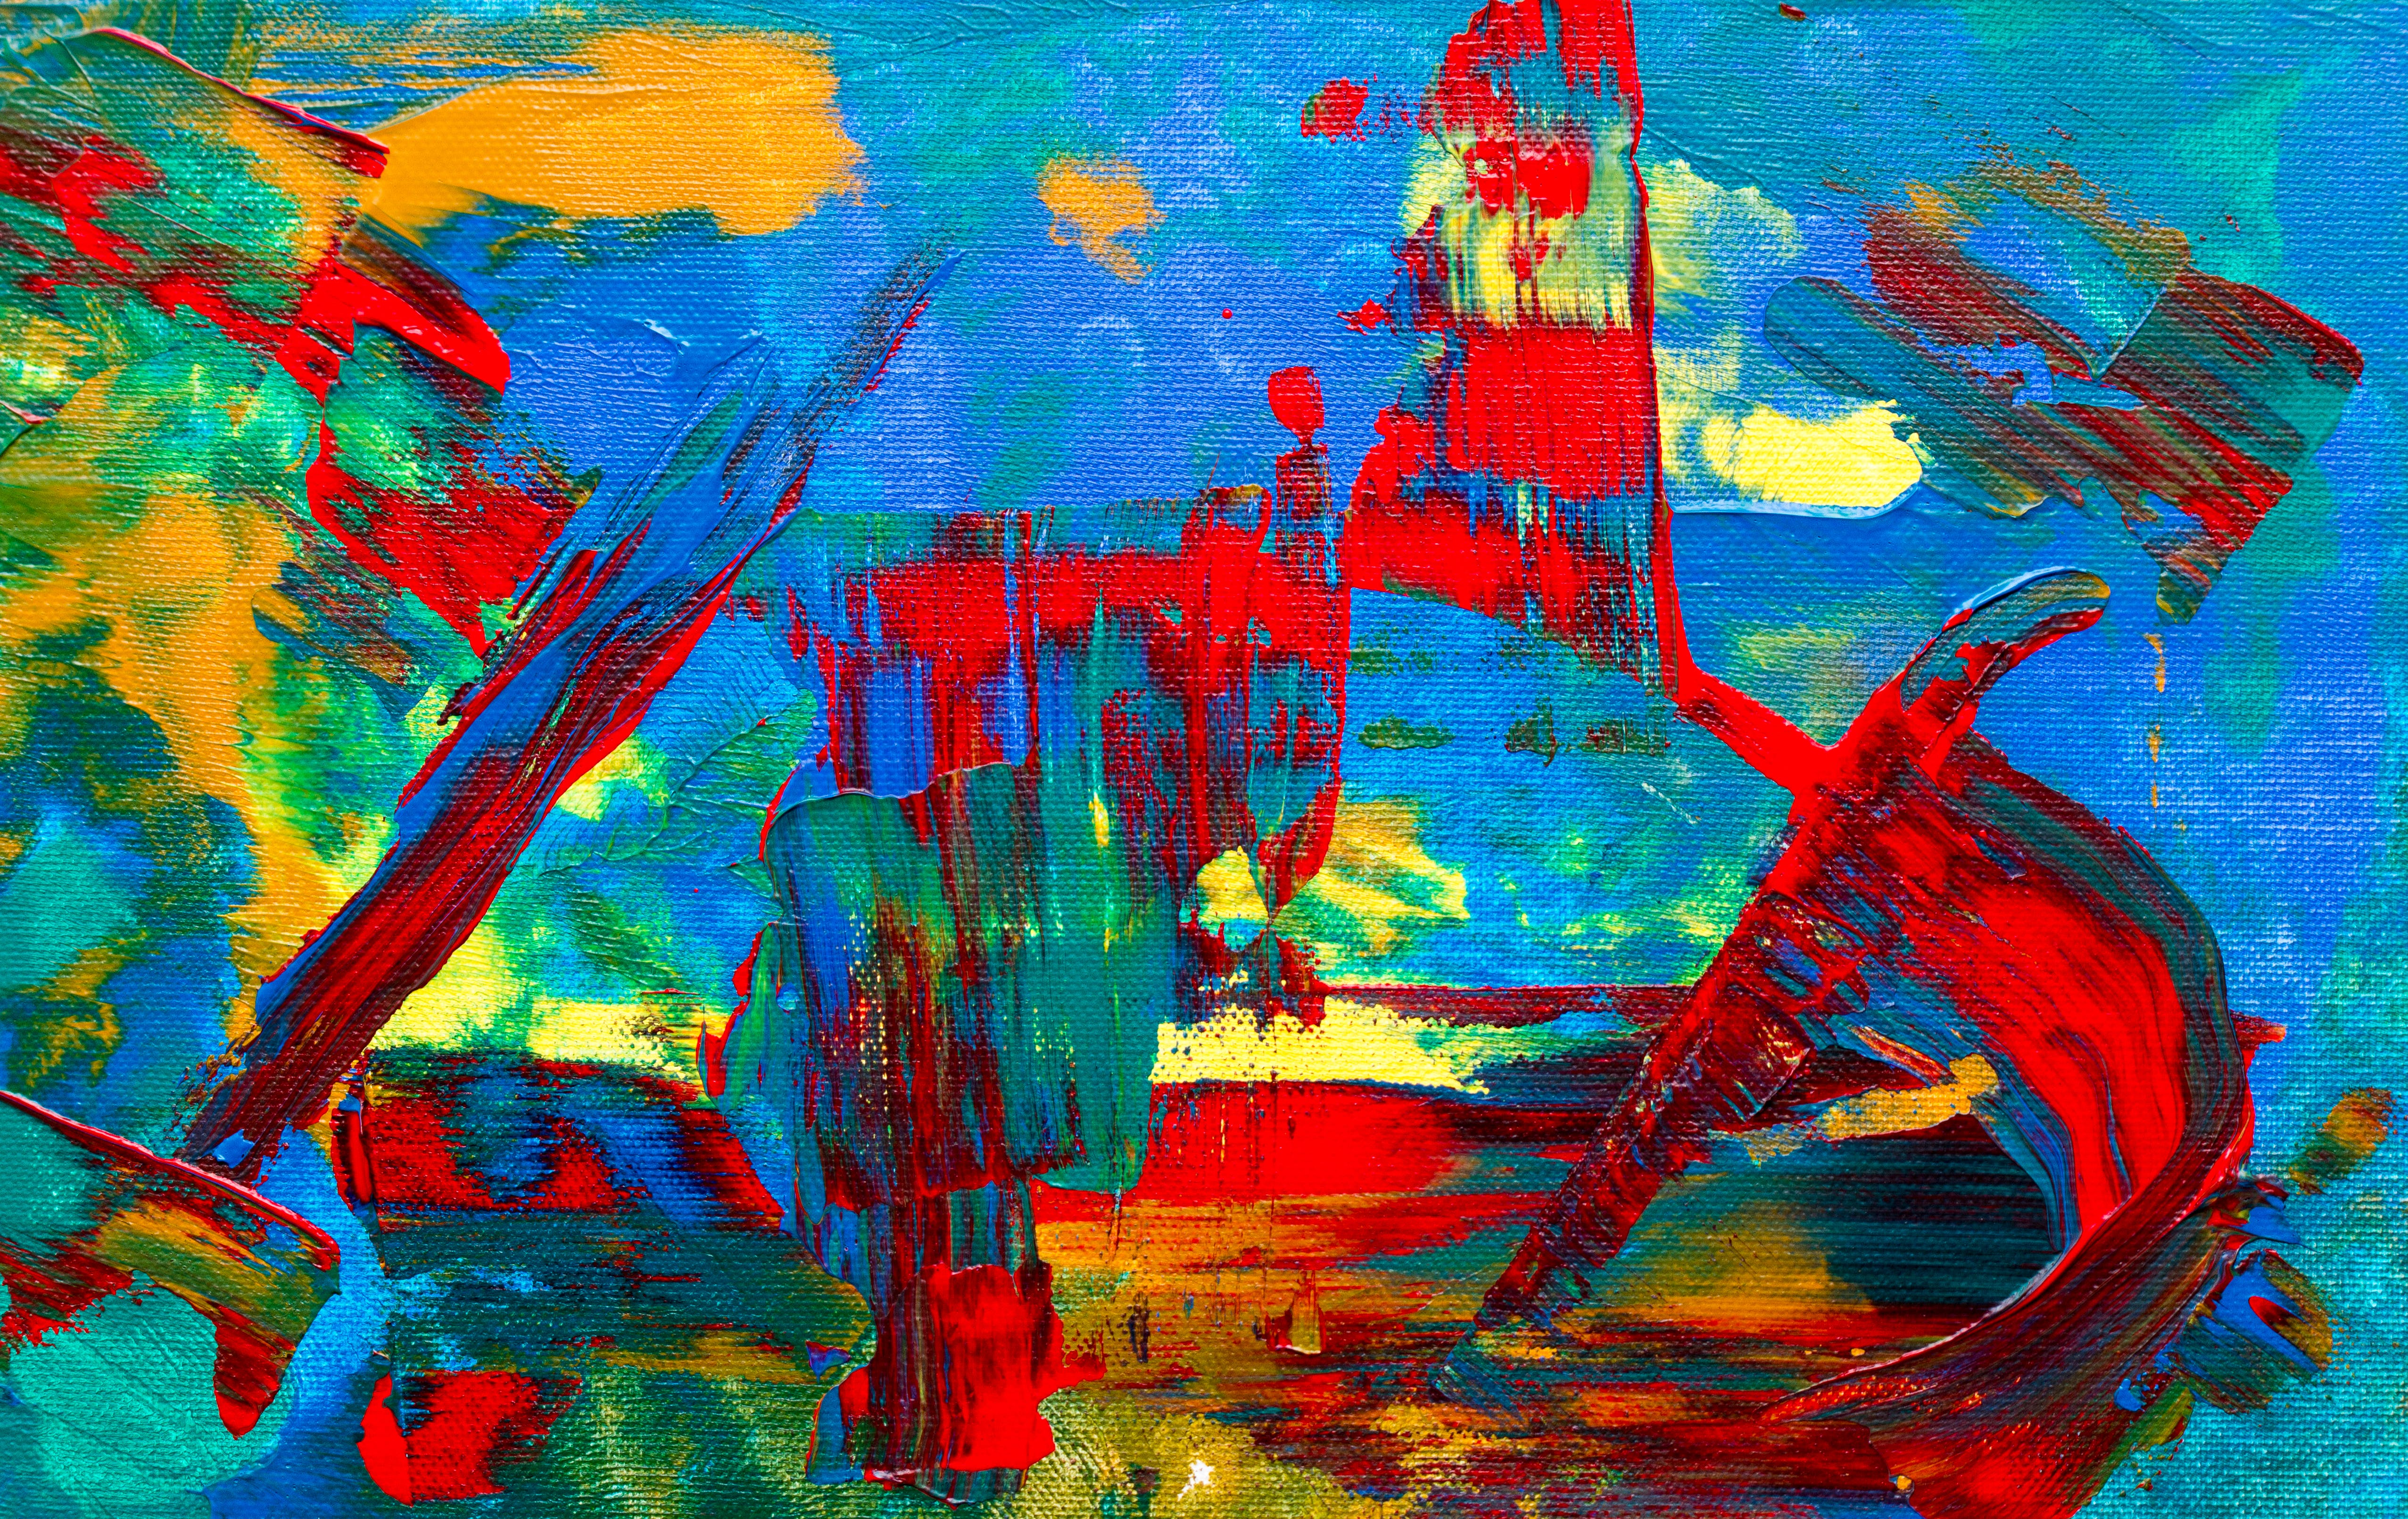 Multicolored Abstract Painting